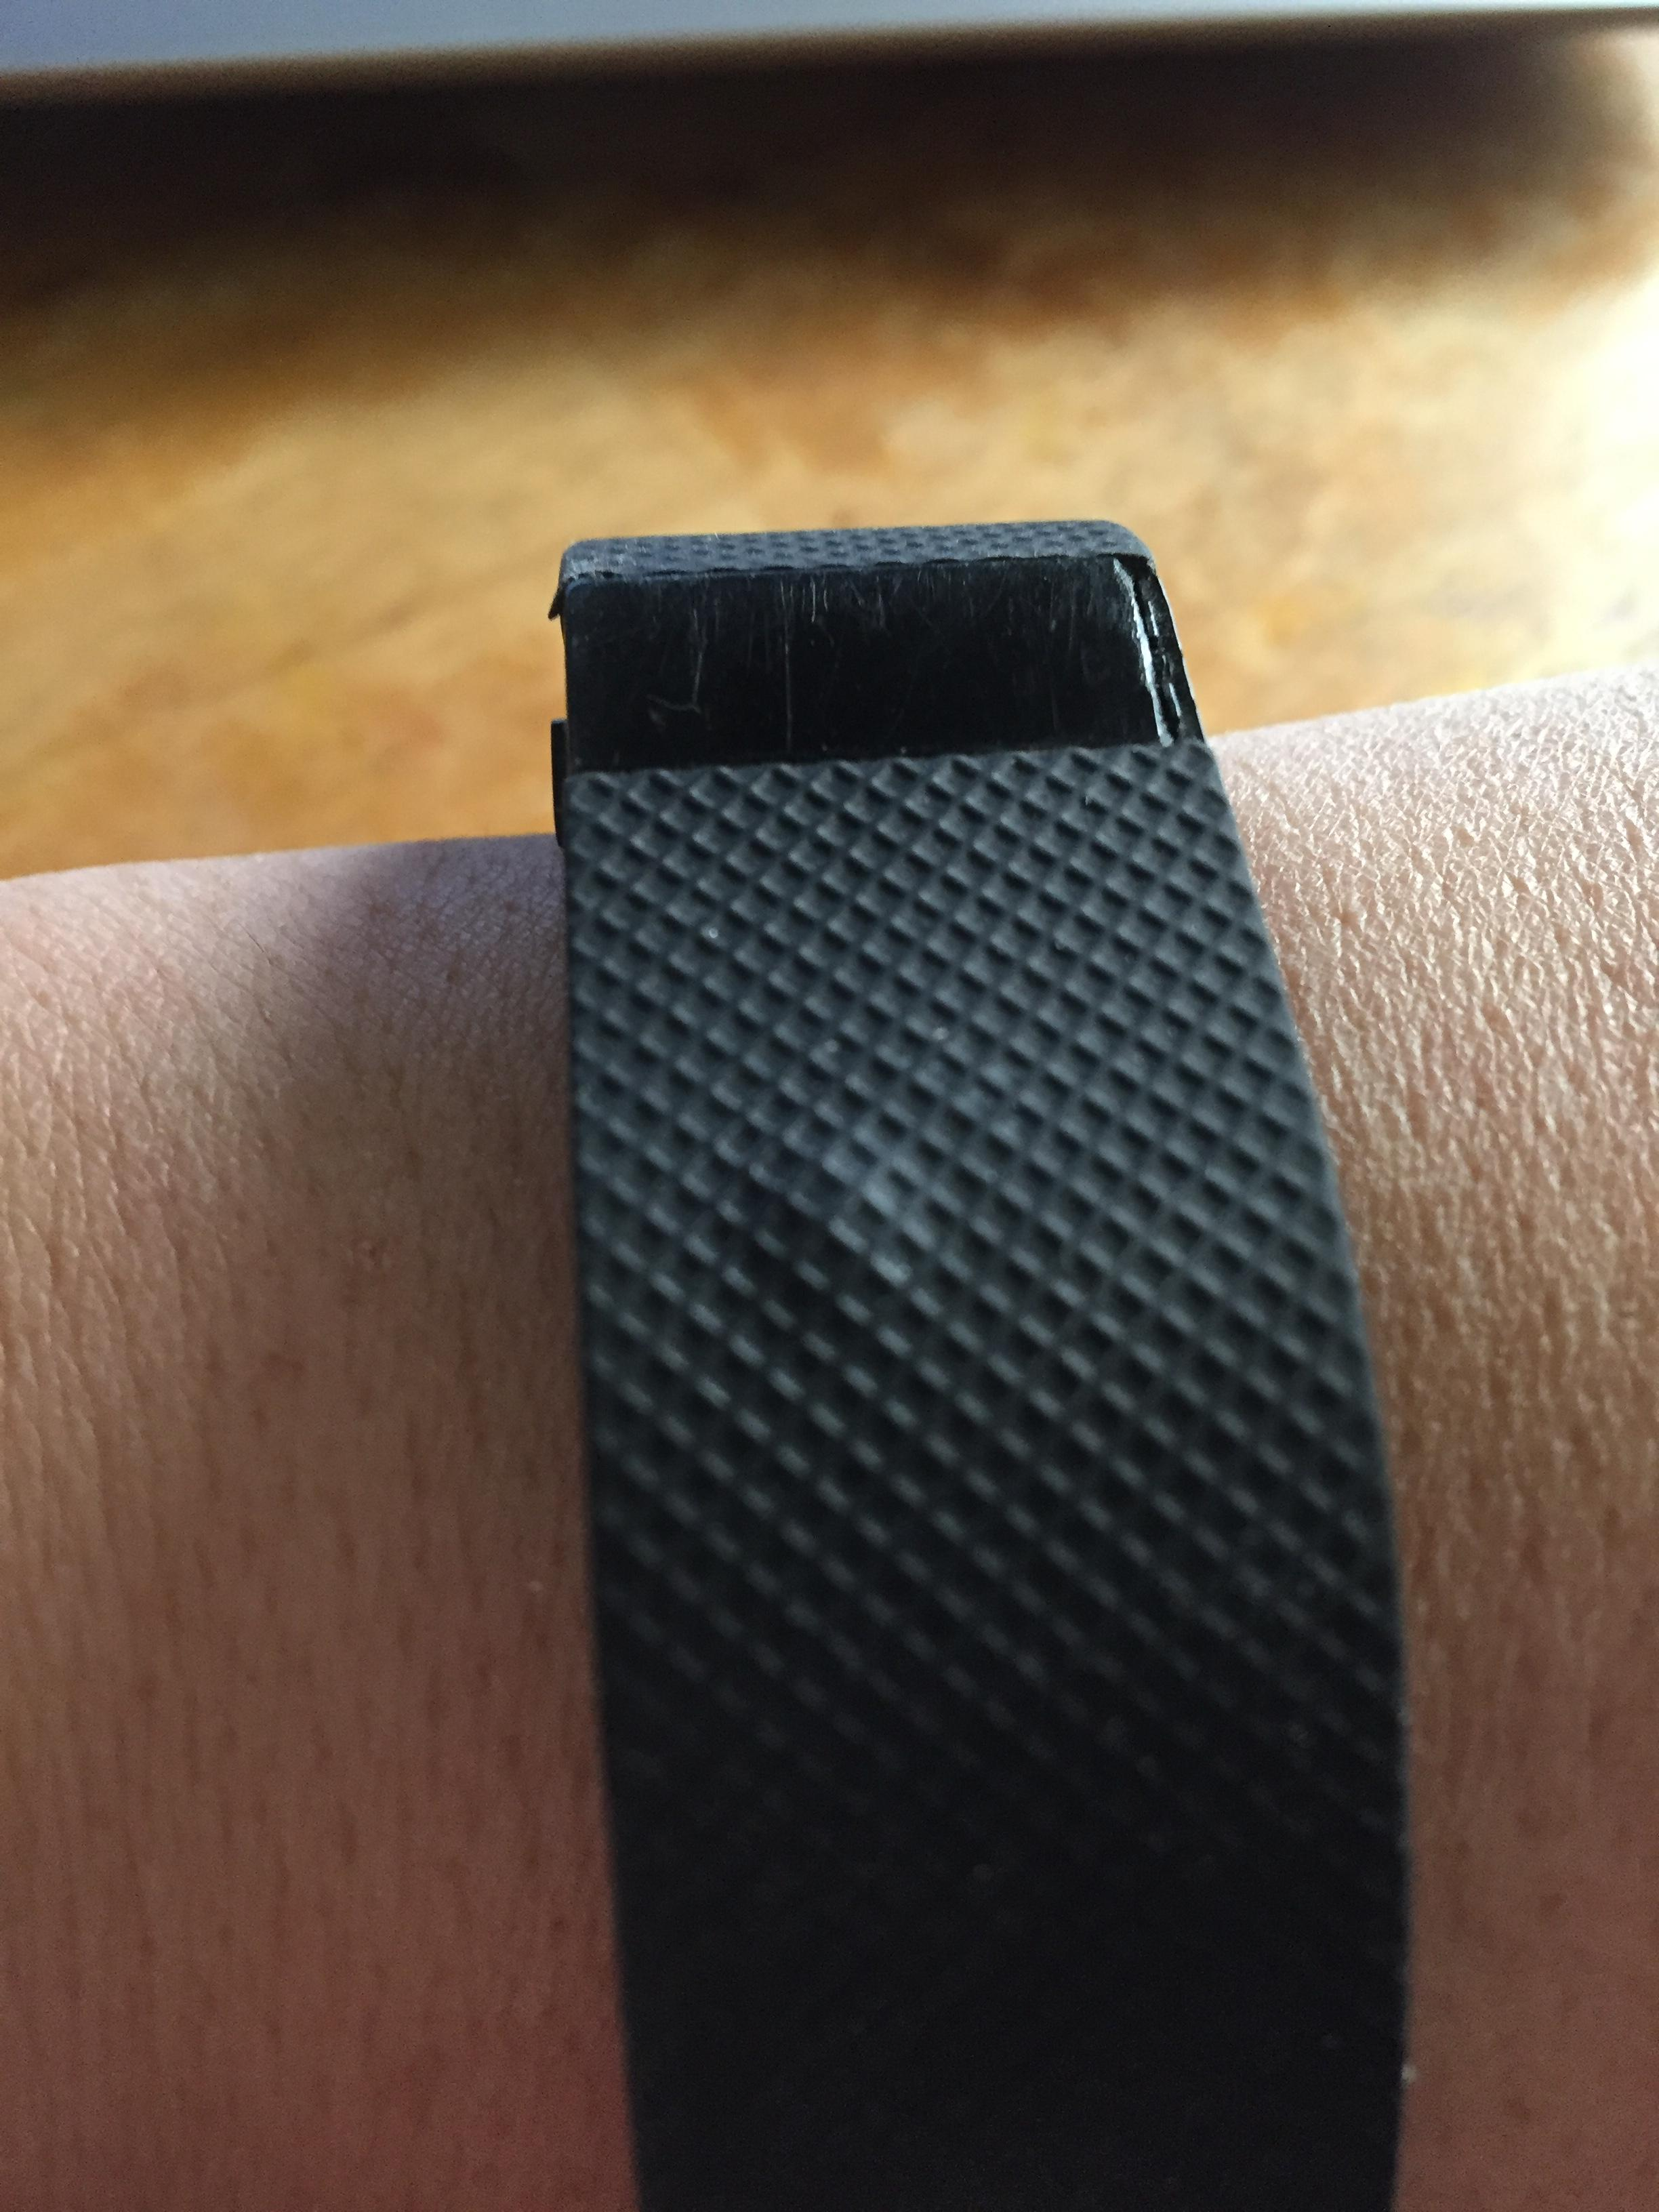 how to change strap on fitbit charge hr